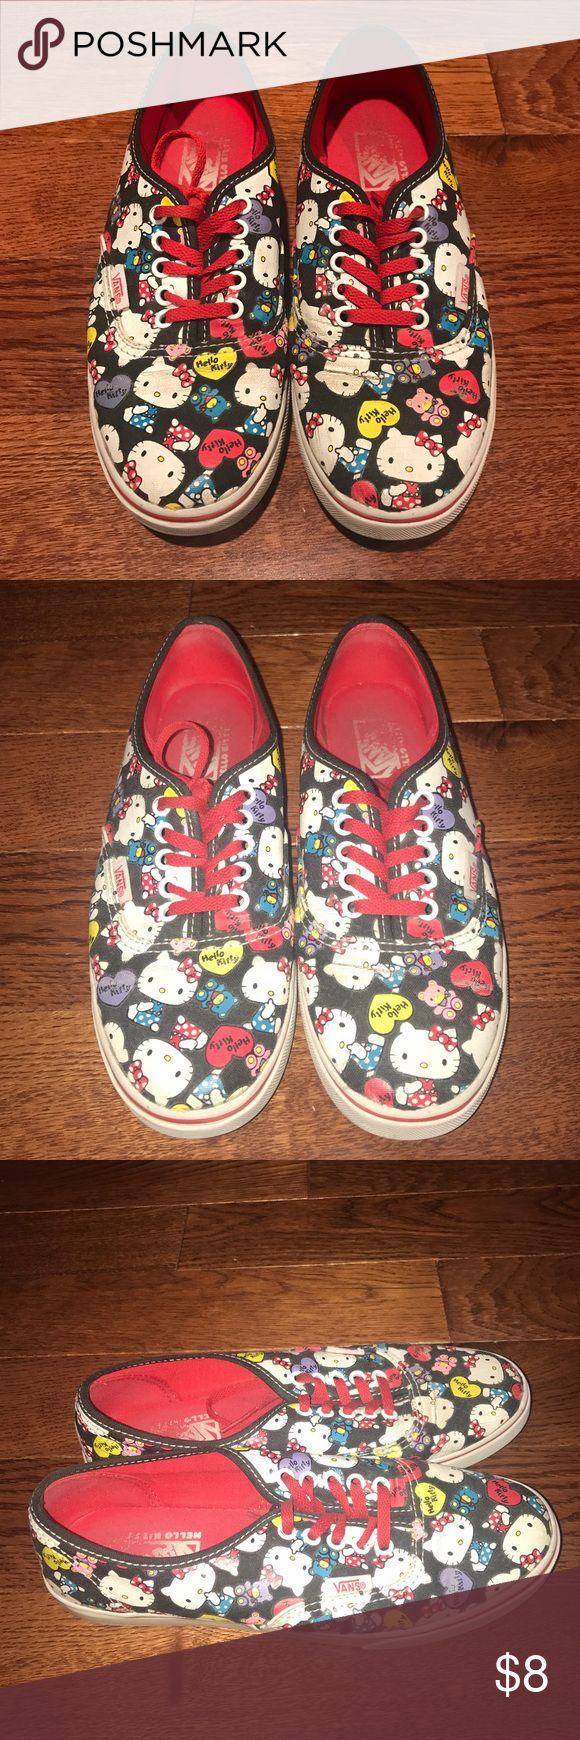 Hello Kitty Vans! Hello Kitty print vans with red detailing. Really worn so willing to negotiate price. Vans Shoes Sneakers